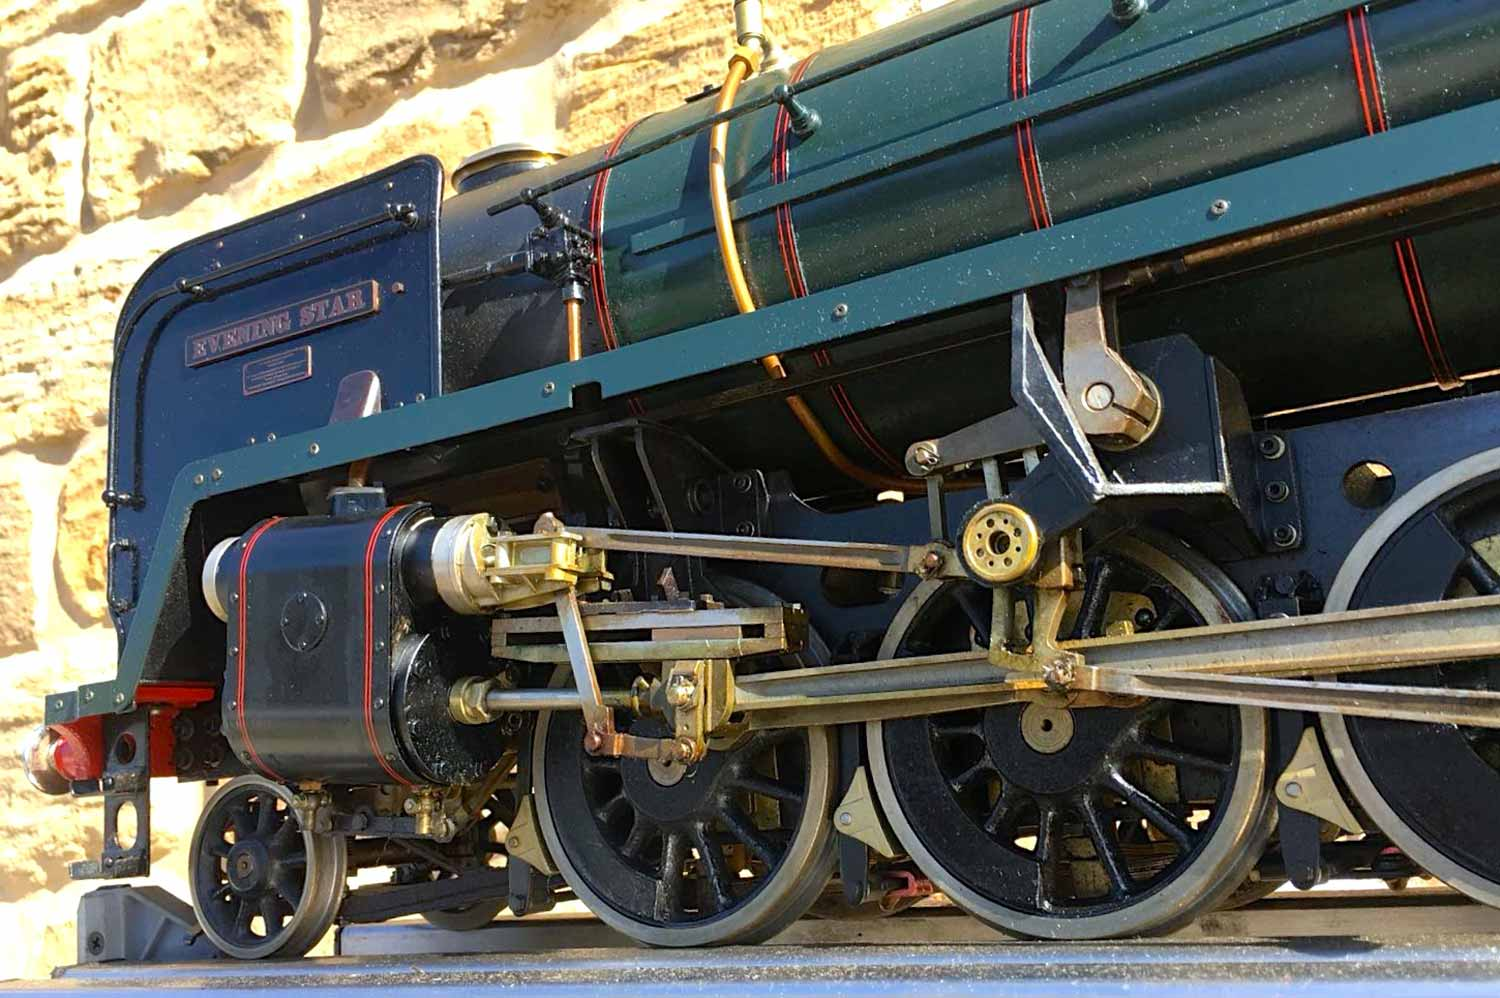 test 3-and-a-half-inch-BR-9F-OS-live-steam-locomotive-for-sale-14